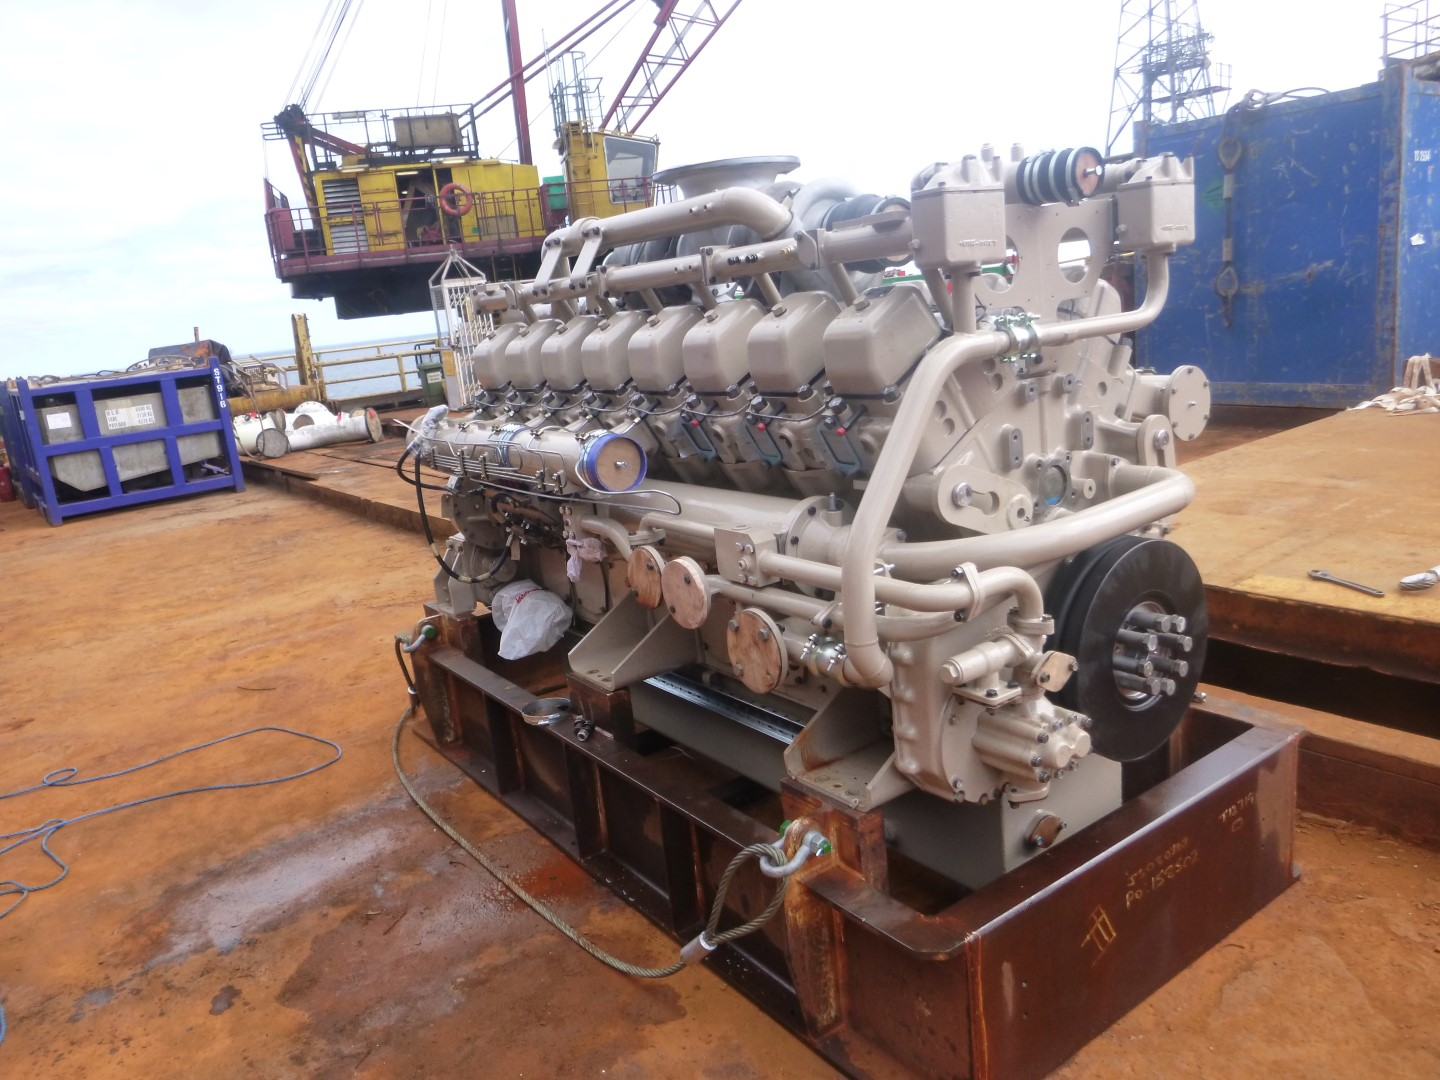 Mitsubishi Engine S16N Bartech worked on as part of the project for Fairfield Energy.